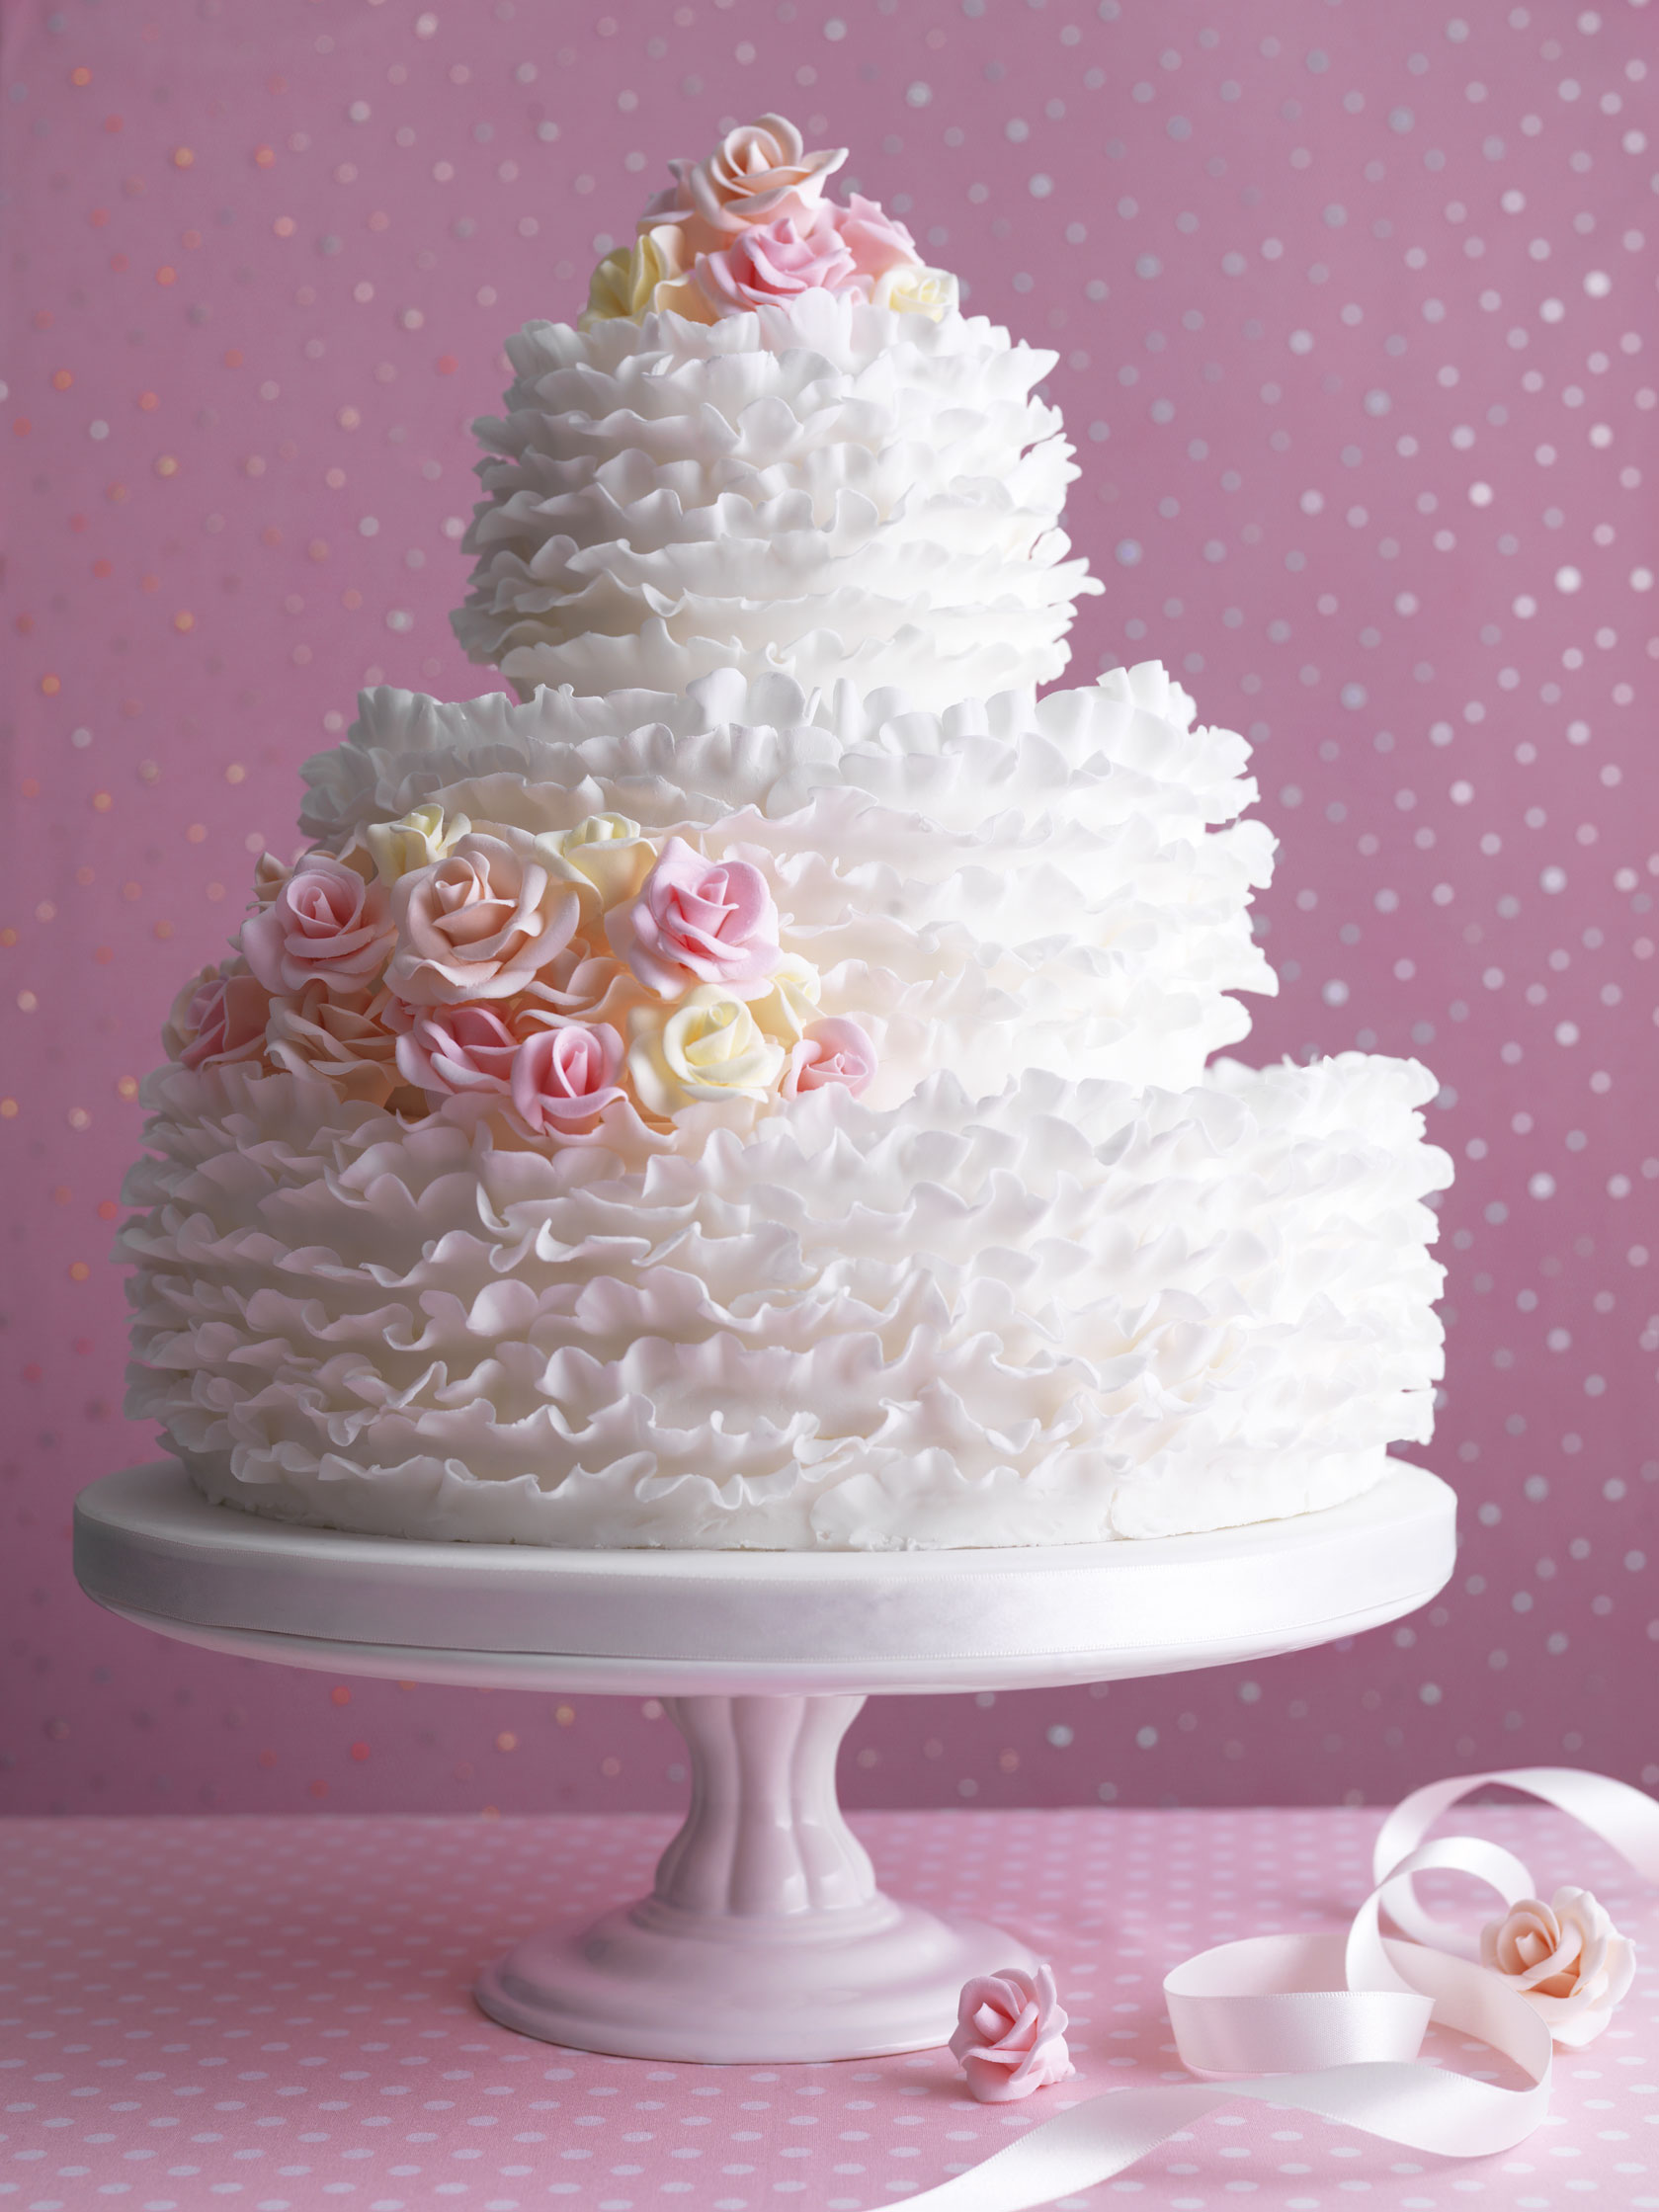 Elegant Wedding Cake Designs